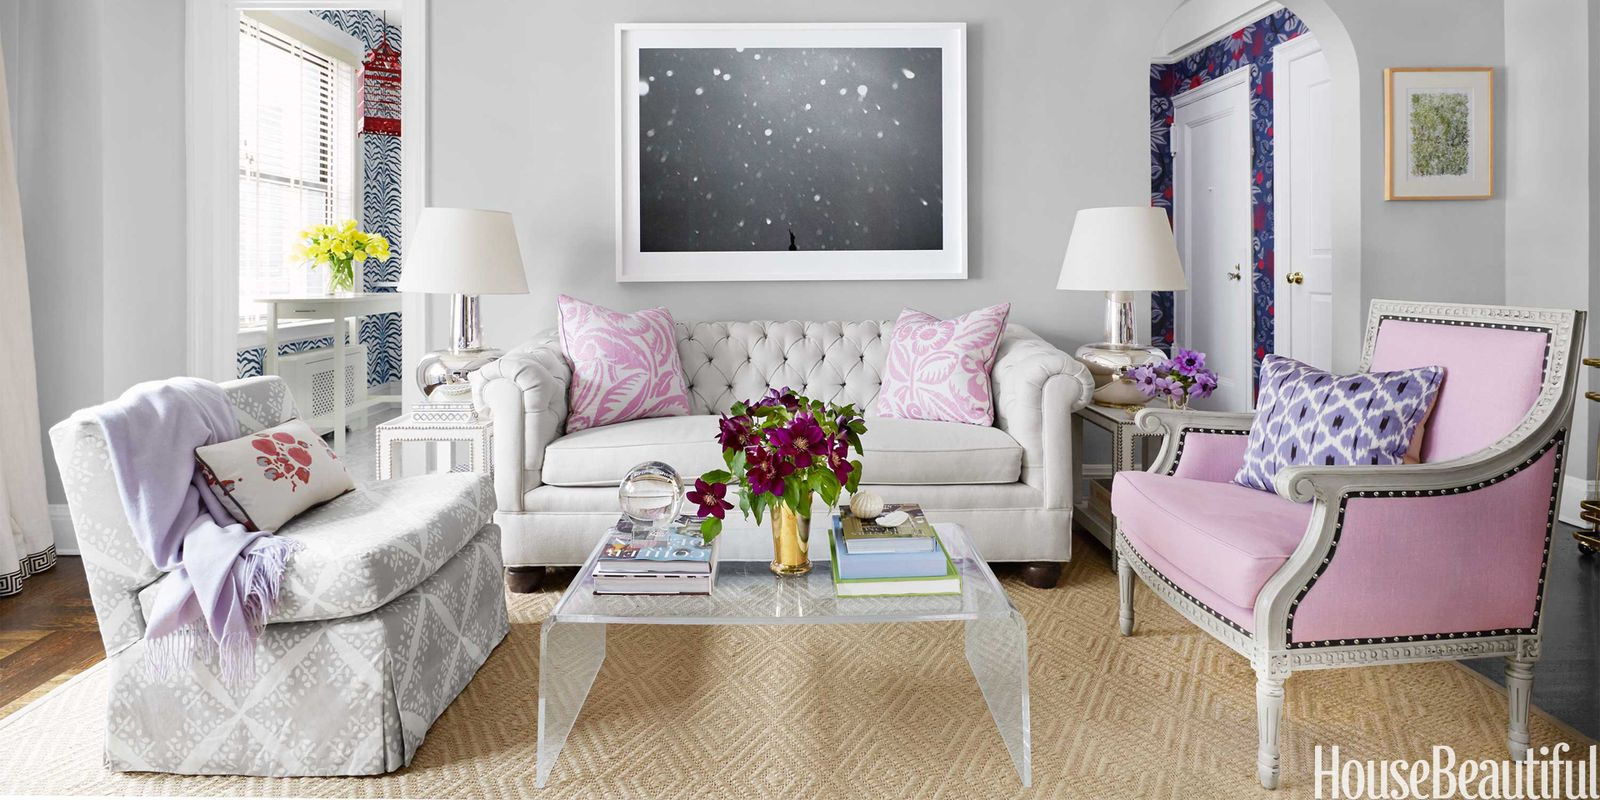 Small Nyc Apartment Design Small Nyc Apartment Design Lavender Decorating Ideas